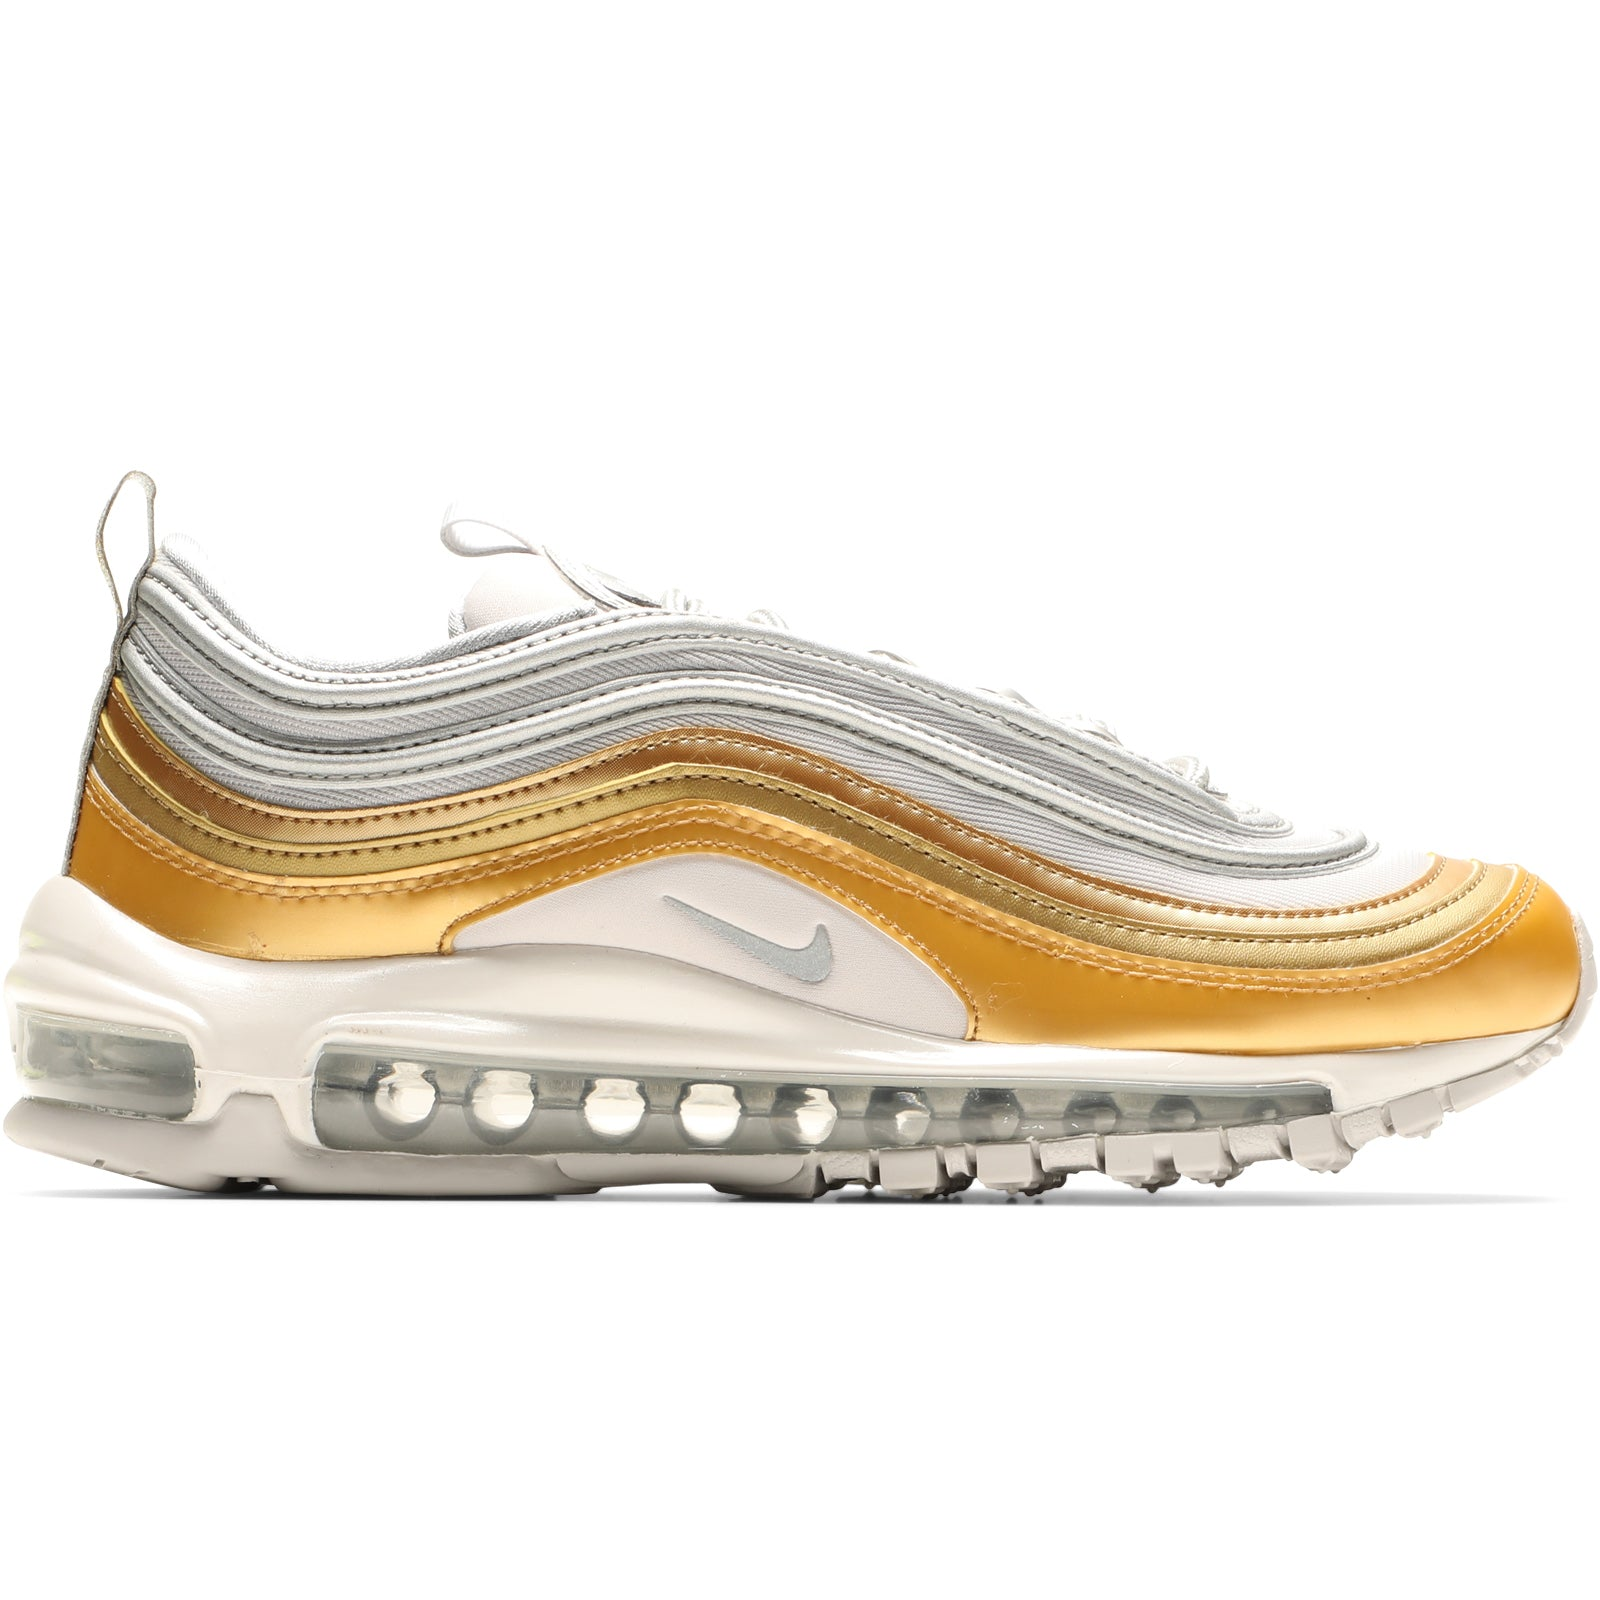 c1b608d407 Over the years, it's been reimagined and retooled, but the heritage always  remains. Nike Air Max 97 Special Edition